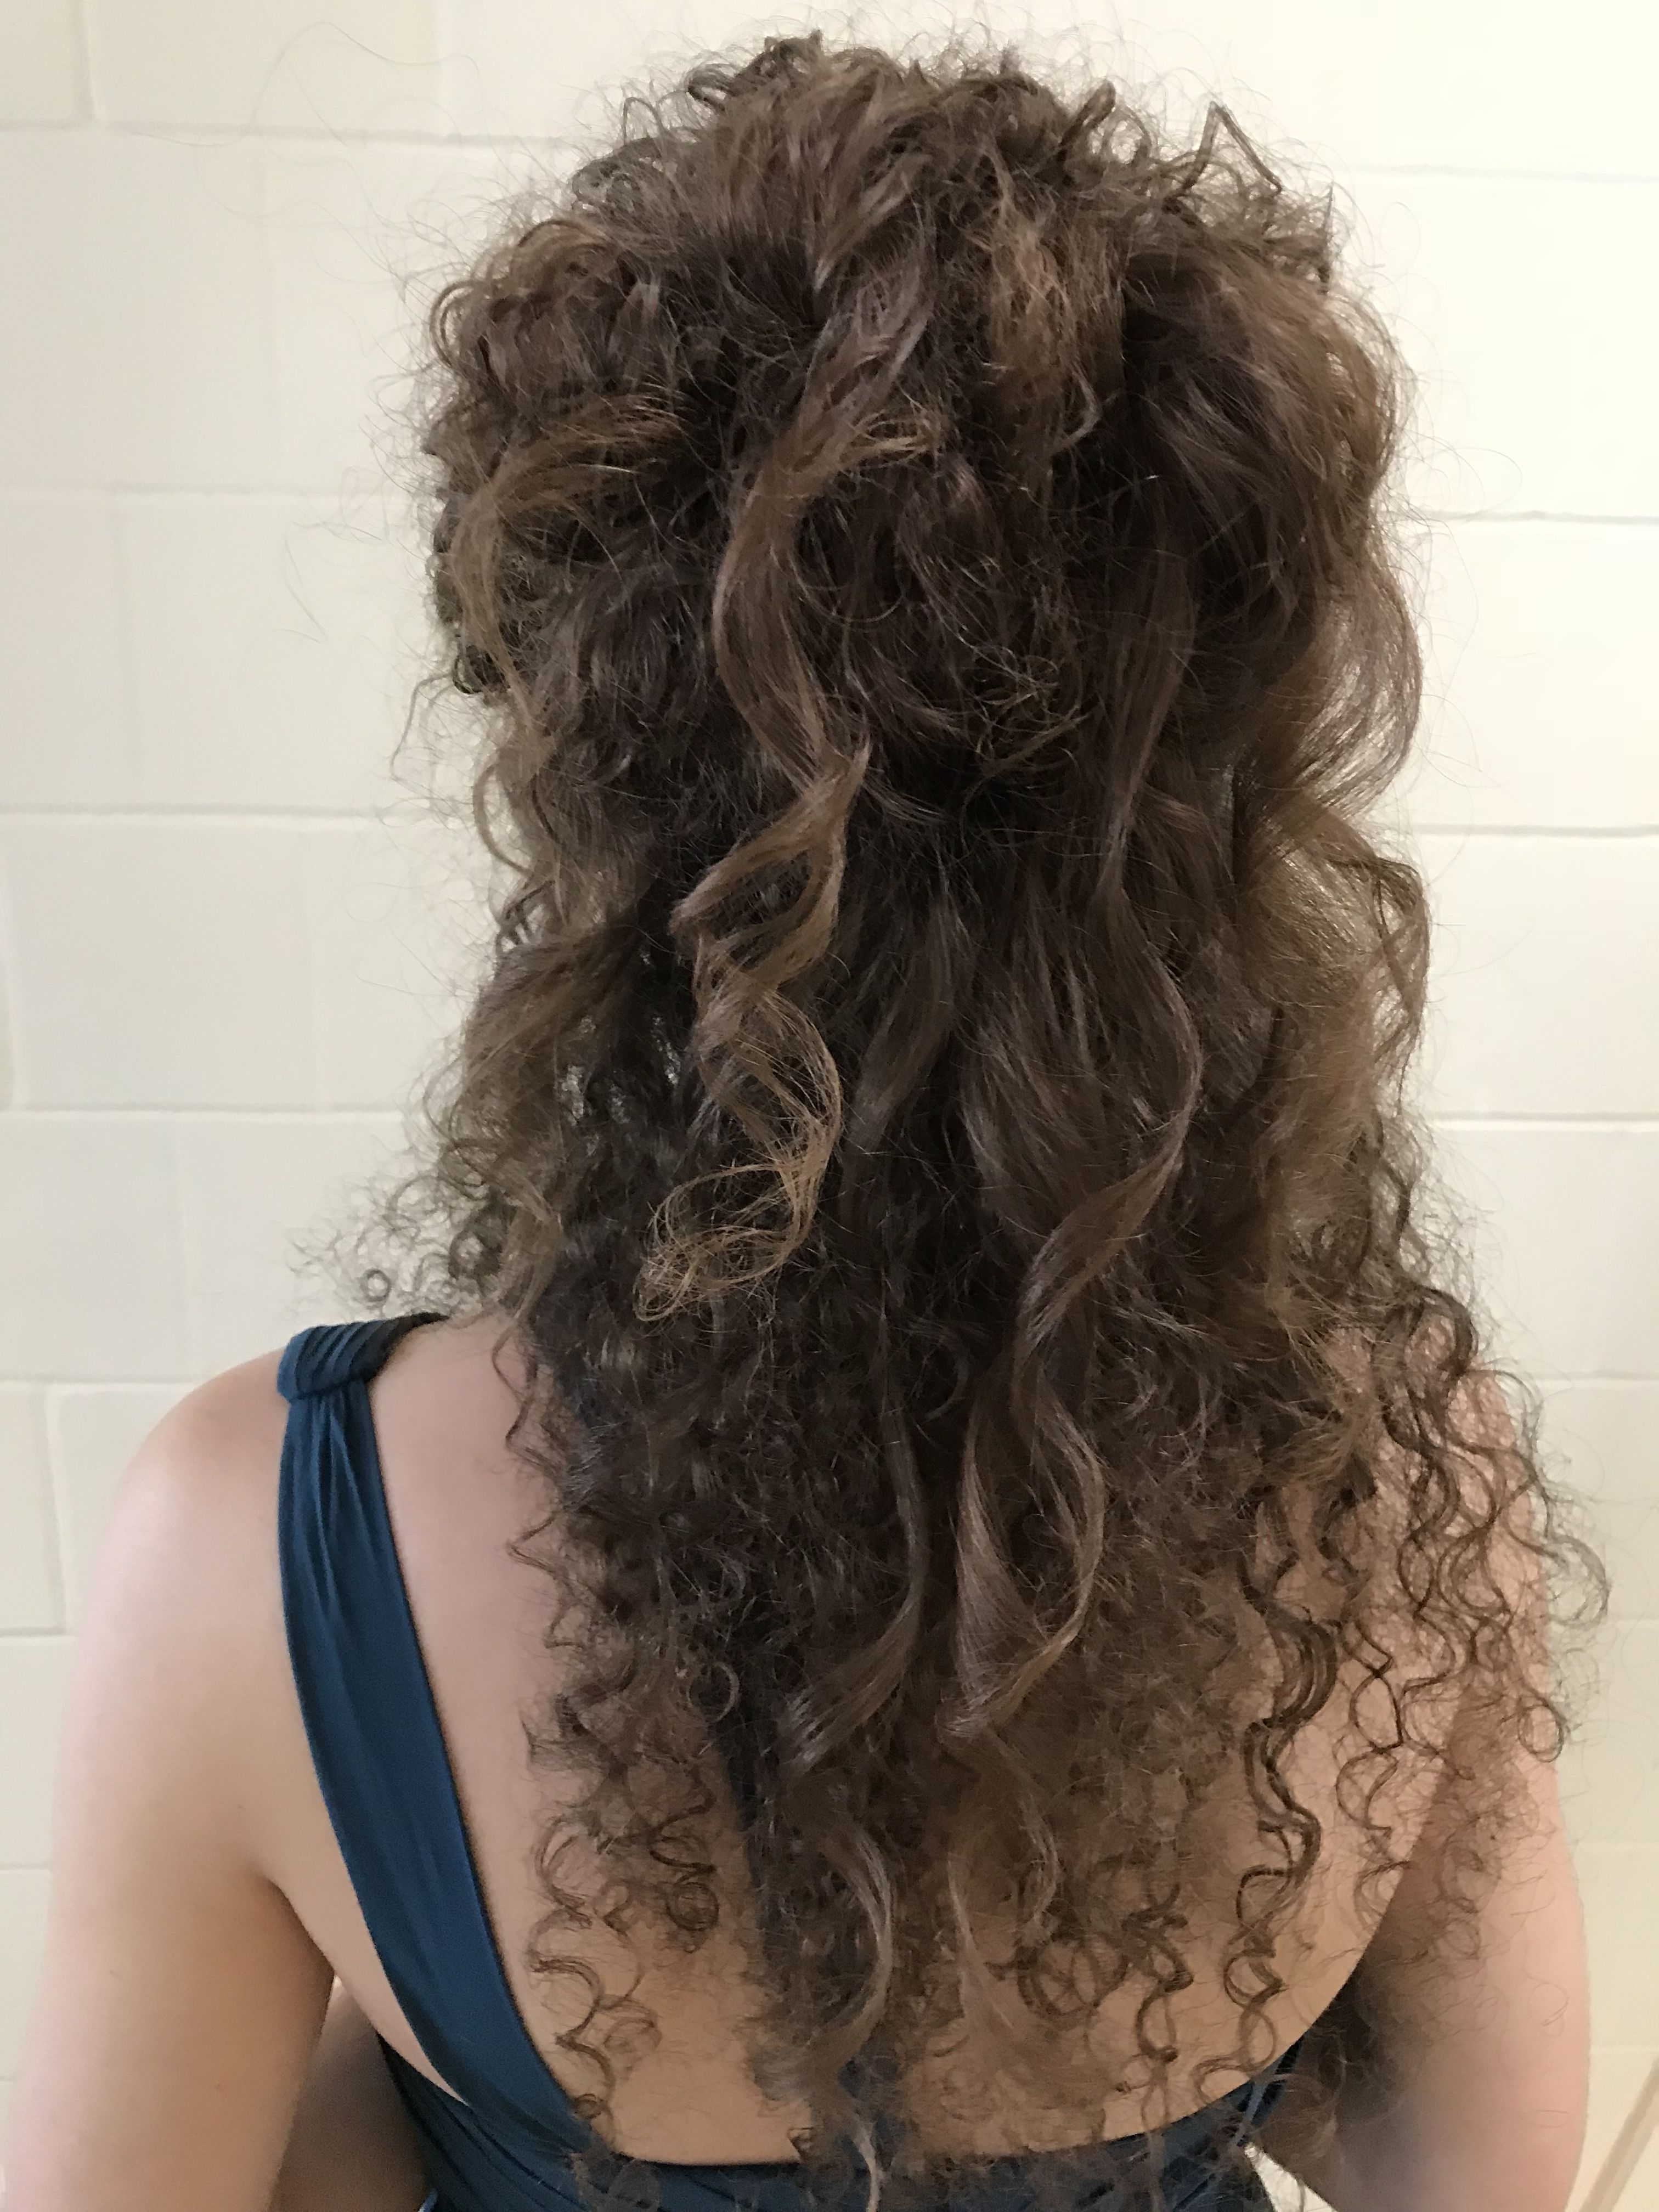 Natural very curly hair updo Styled by Ali Morris in Minneapolis